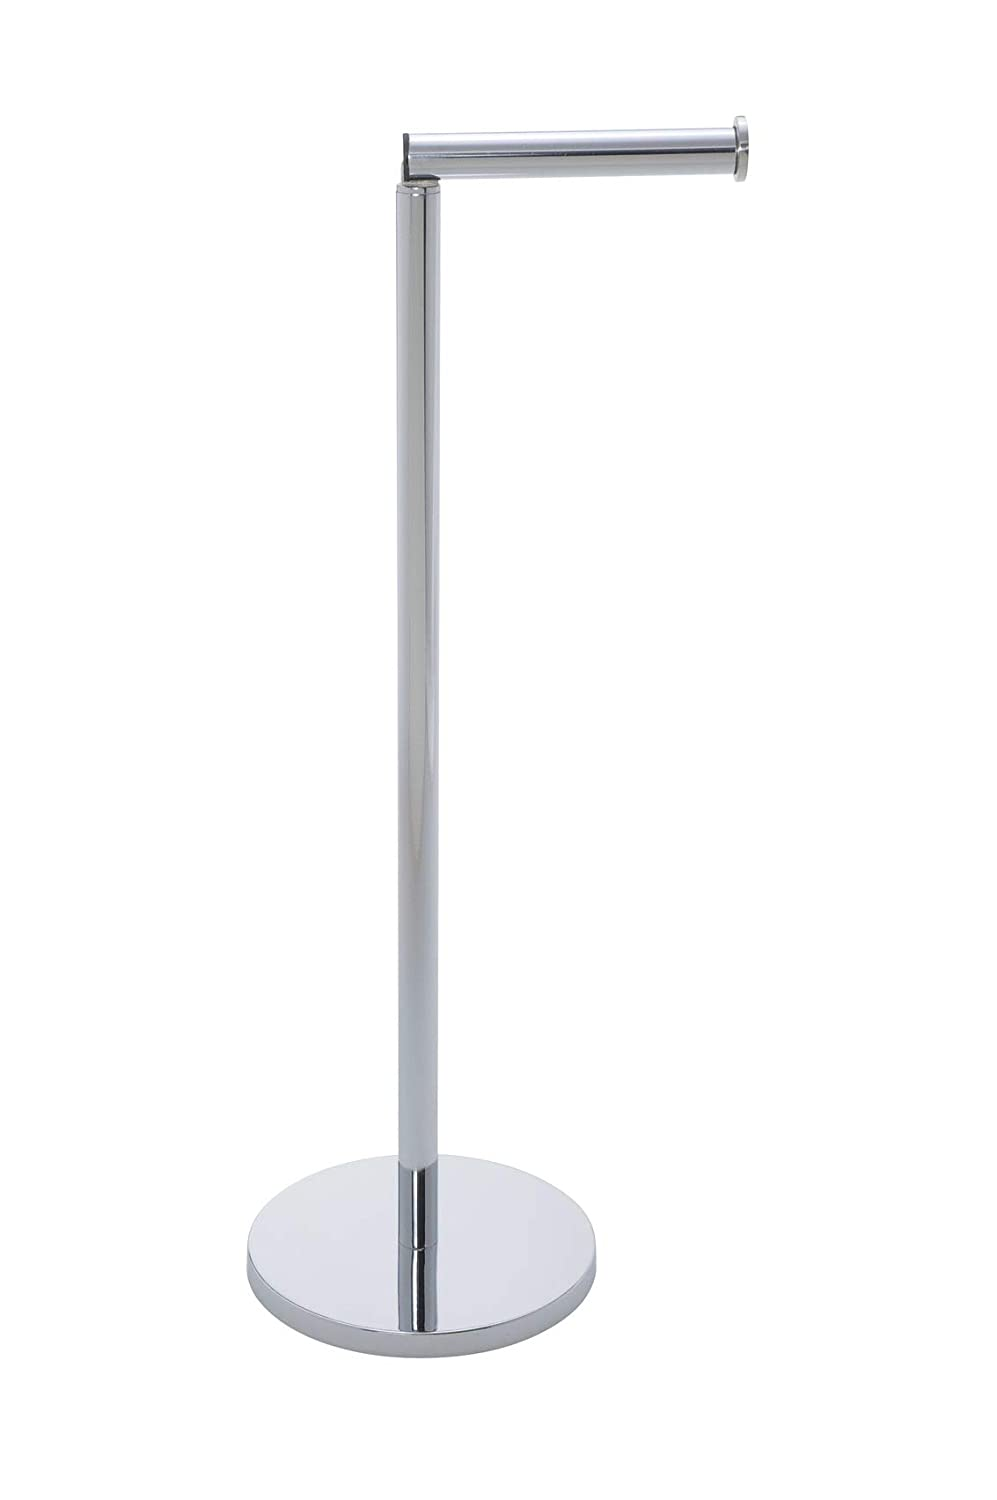 WenkoFree-standing toilet roll holder 2 8.3 x 21.7 x 6.7 inch Shiny